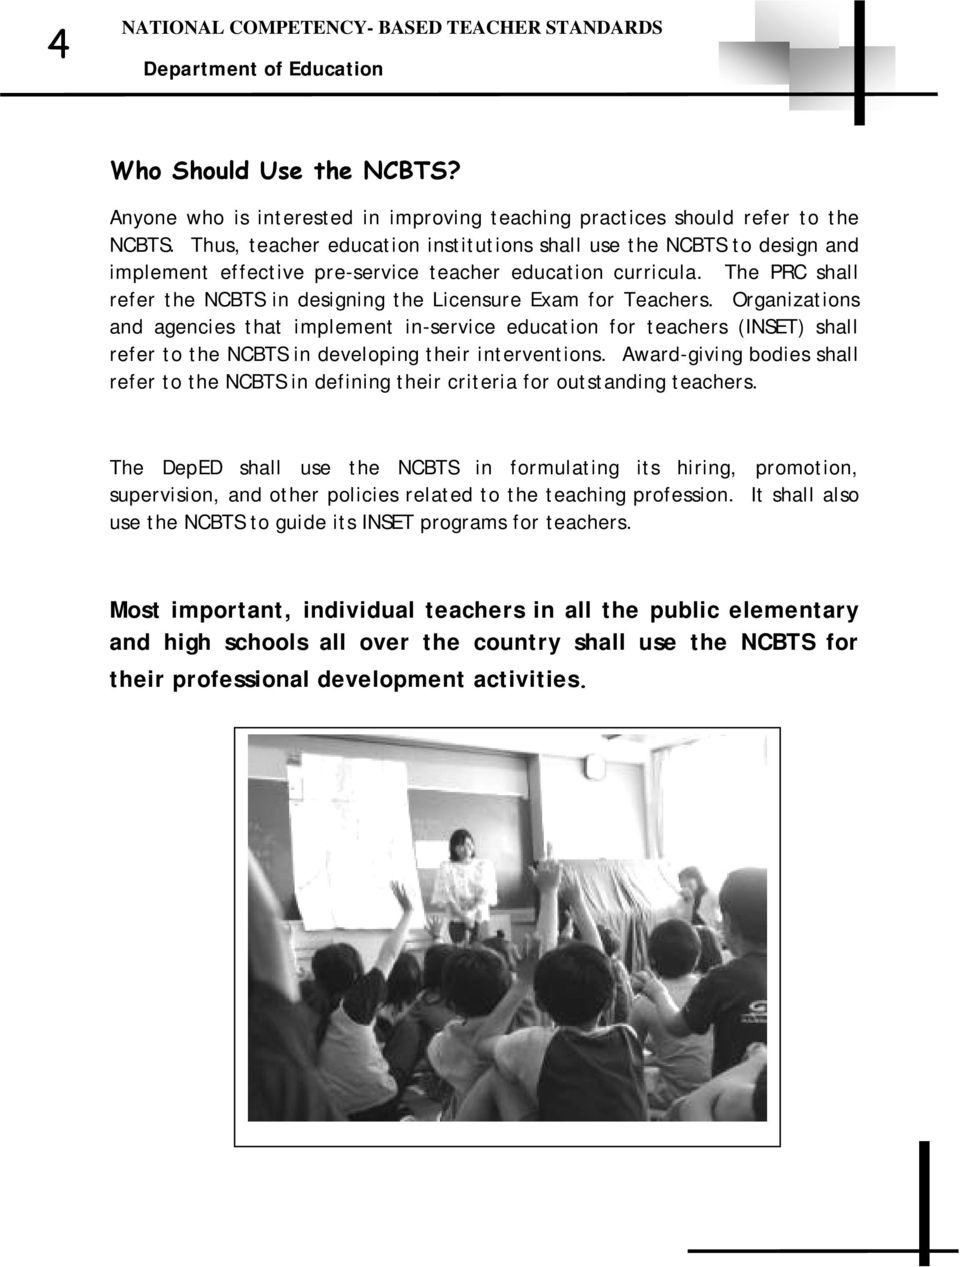 The PRC shall refer the NCBTS in designing the Licensure Exam for Teachers.